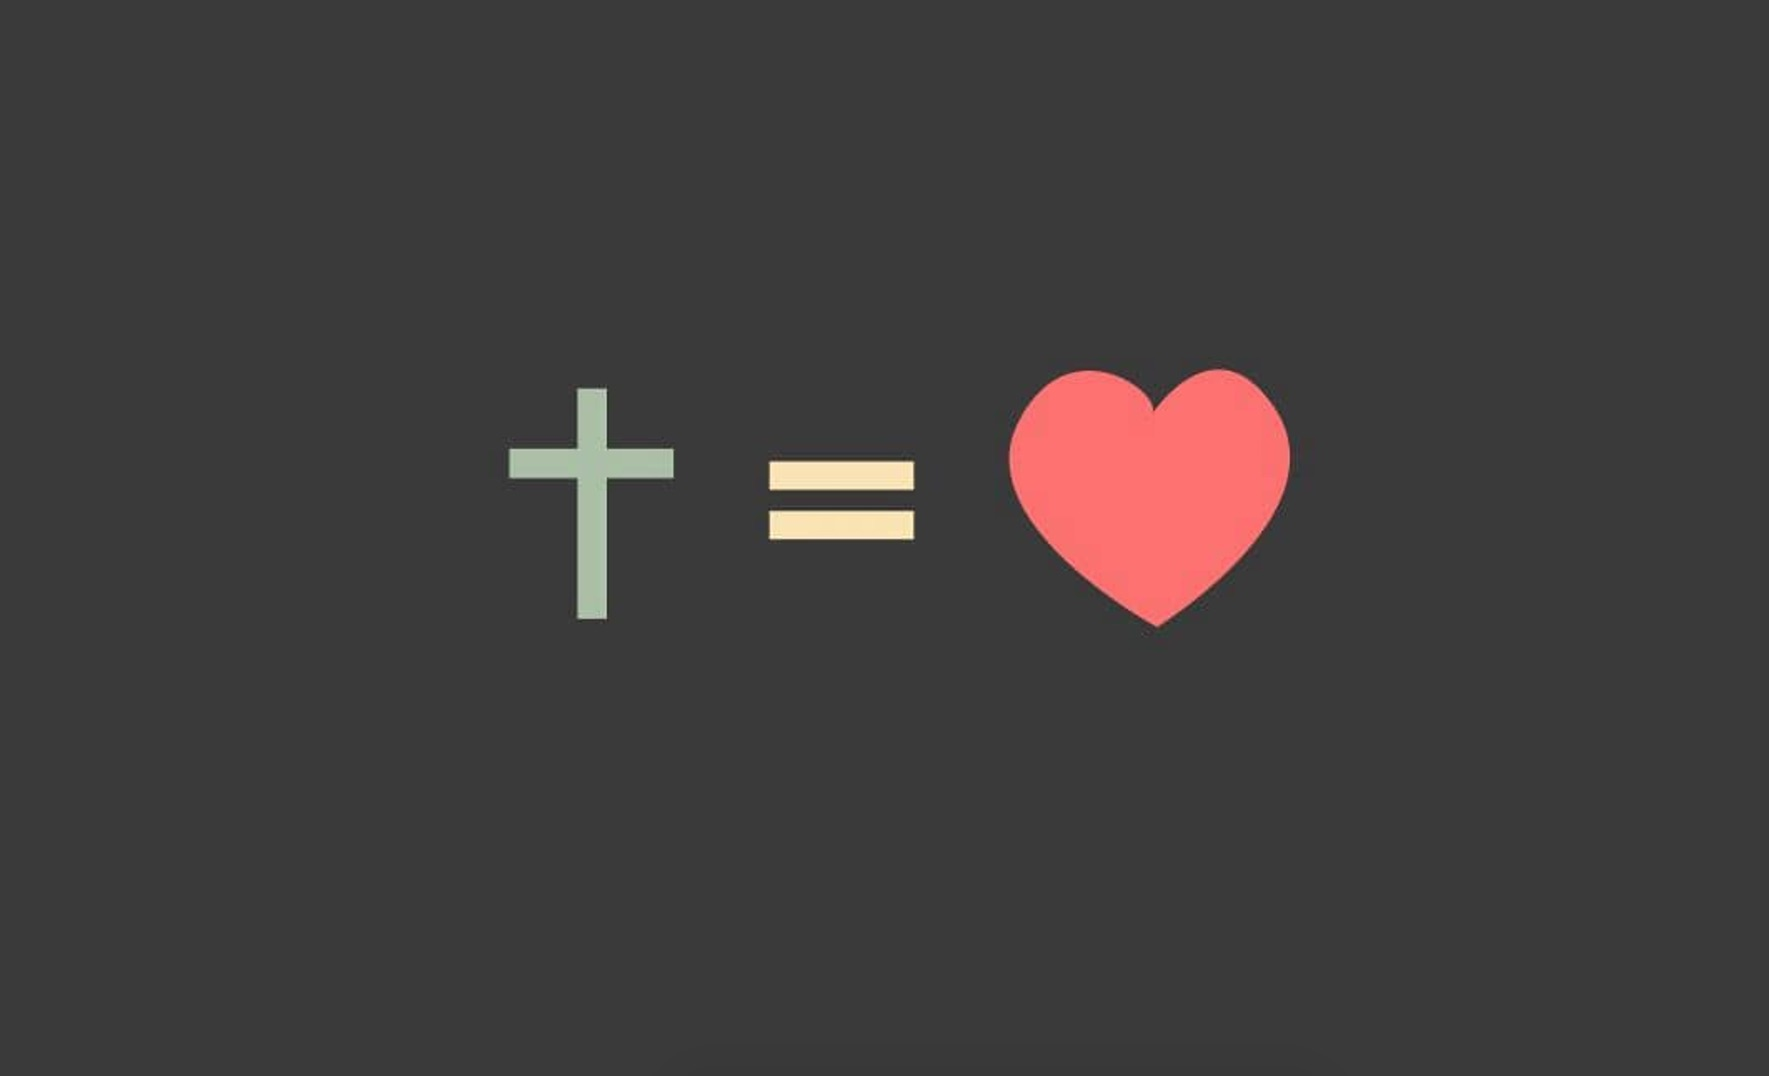 20 Bible verses about God's love and forgiveness